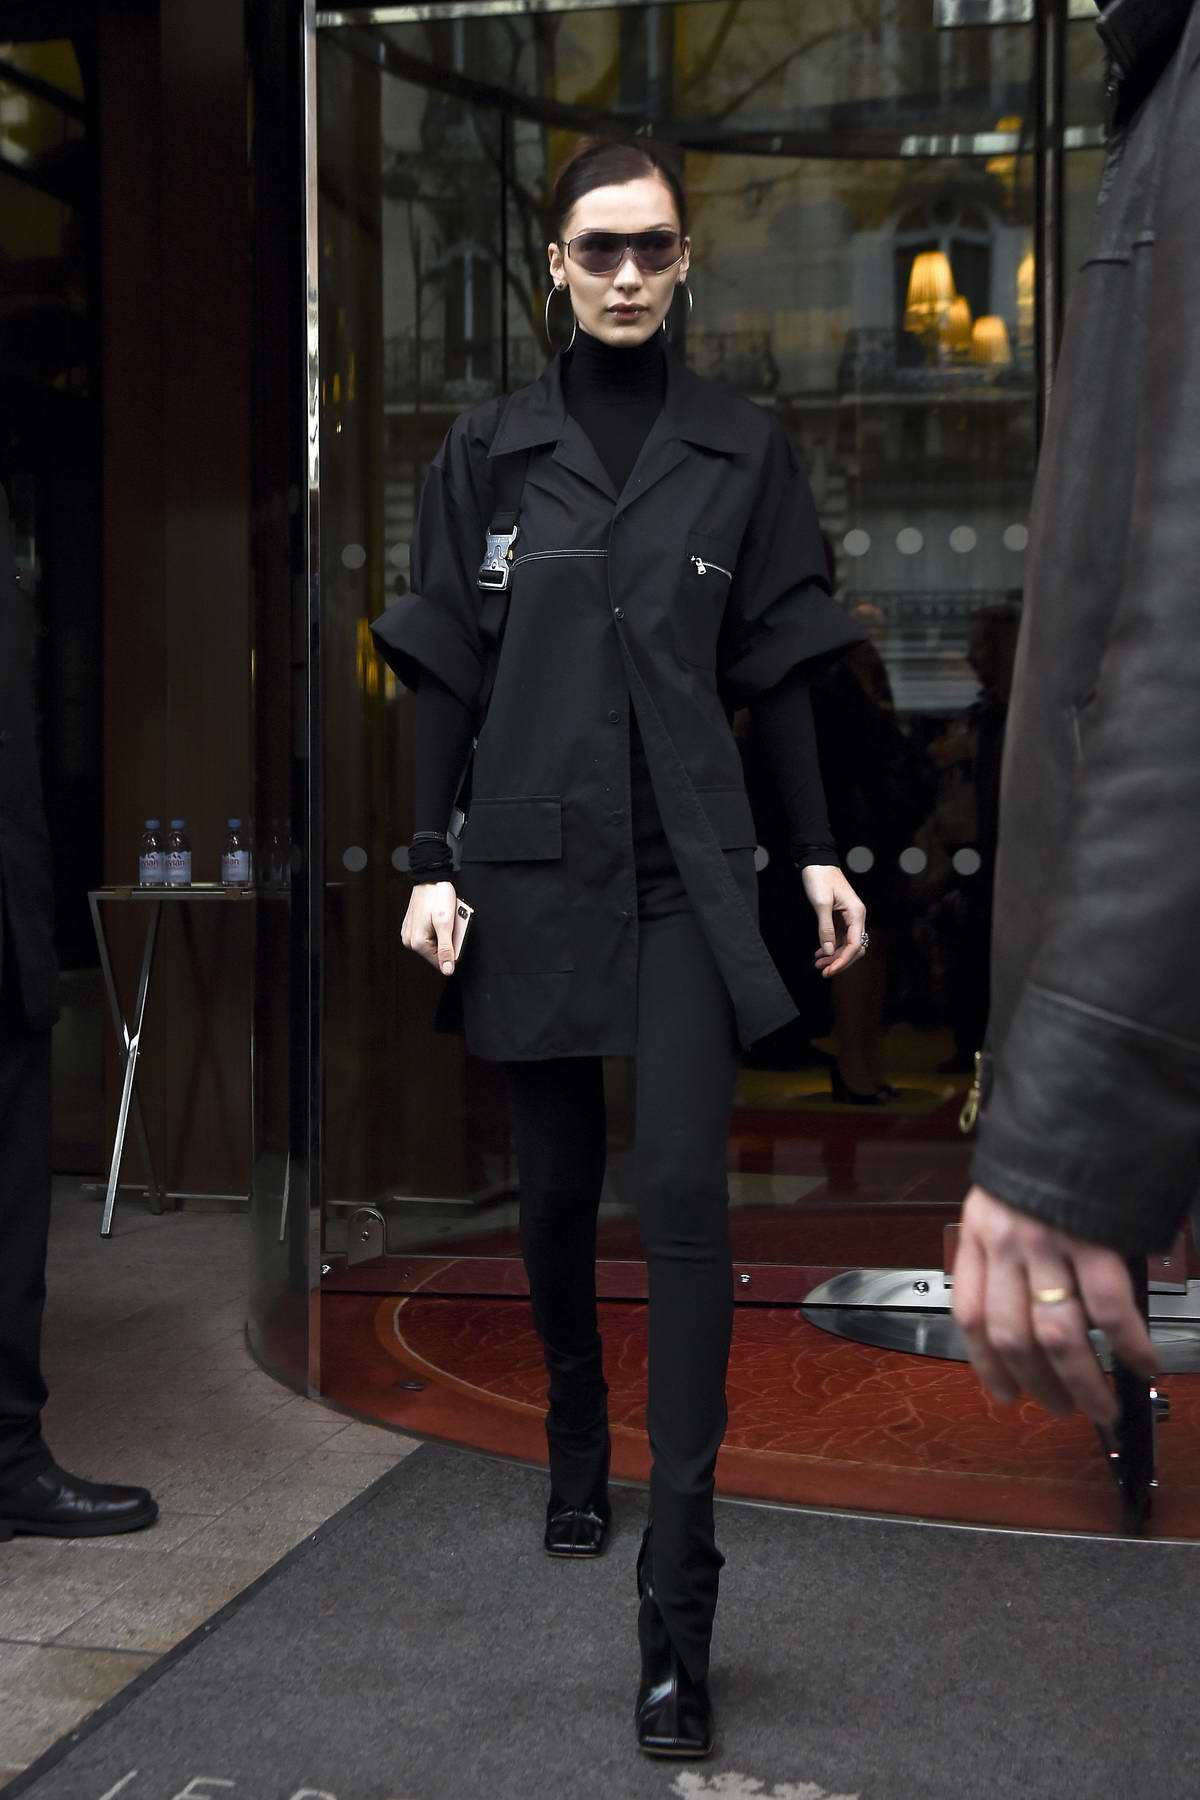 Bella Hadid dresses in all black as she leave Le Royal Monceau Hotel during PFW 2019 in Paris, France